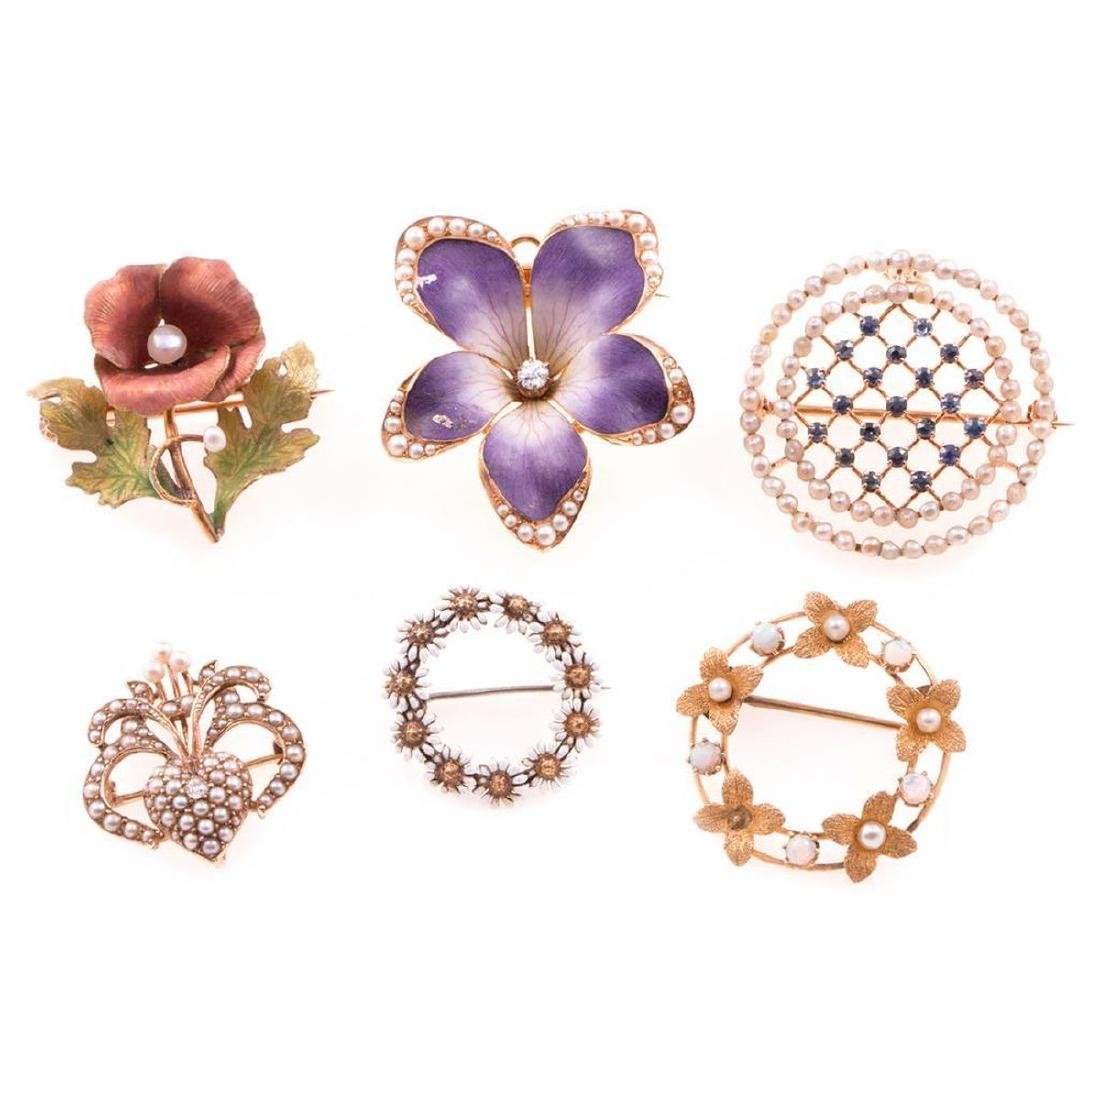 Six antique brooches